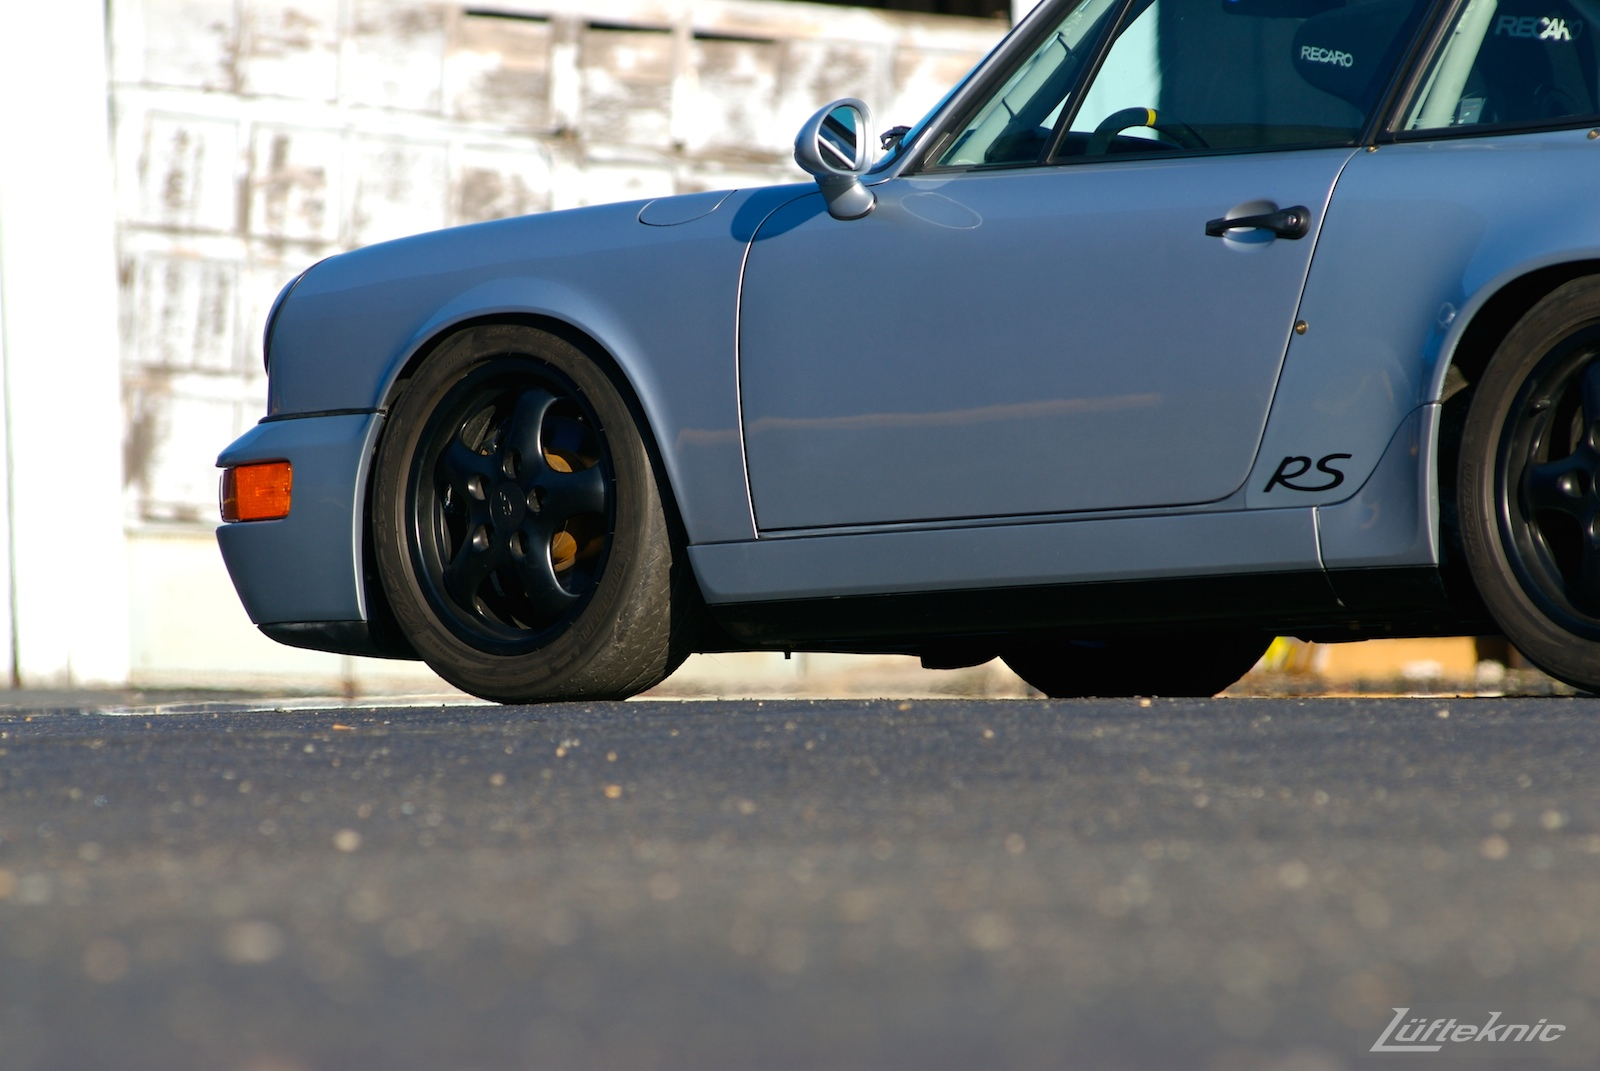 The front portion of the RS America shot from down low.